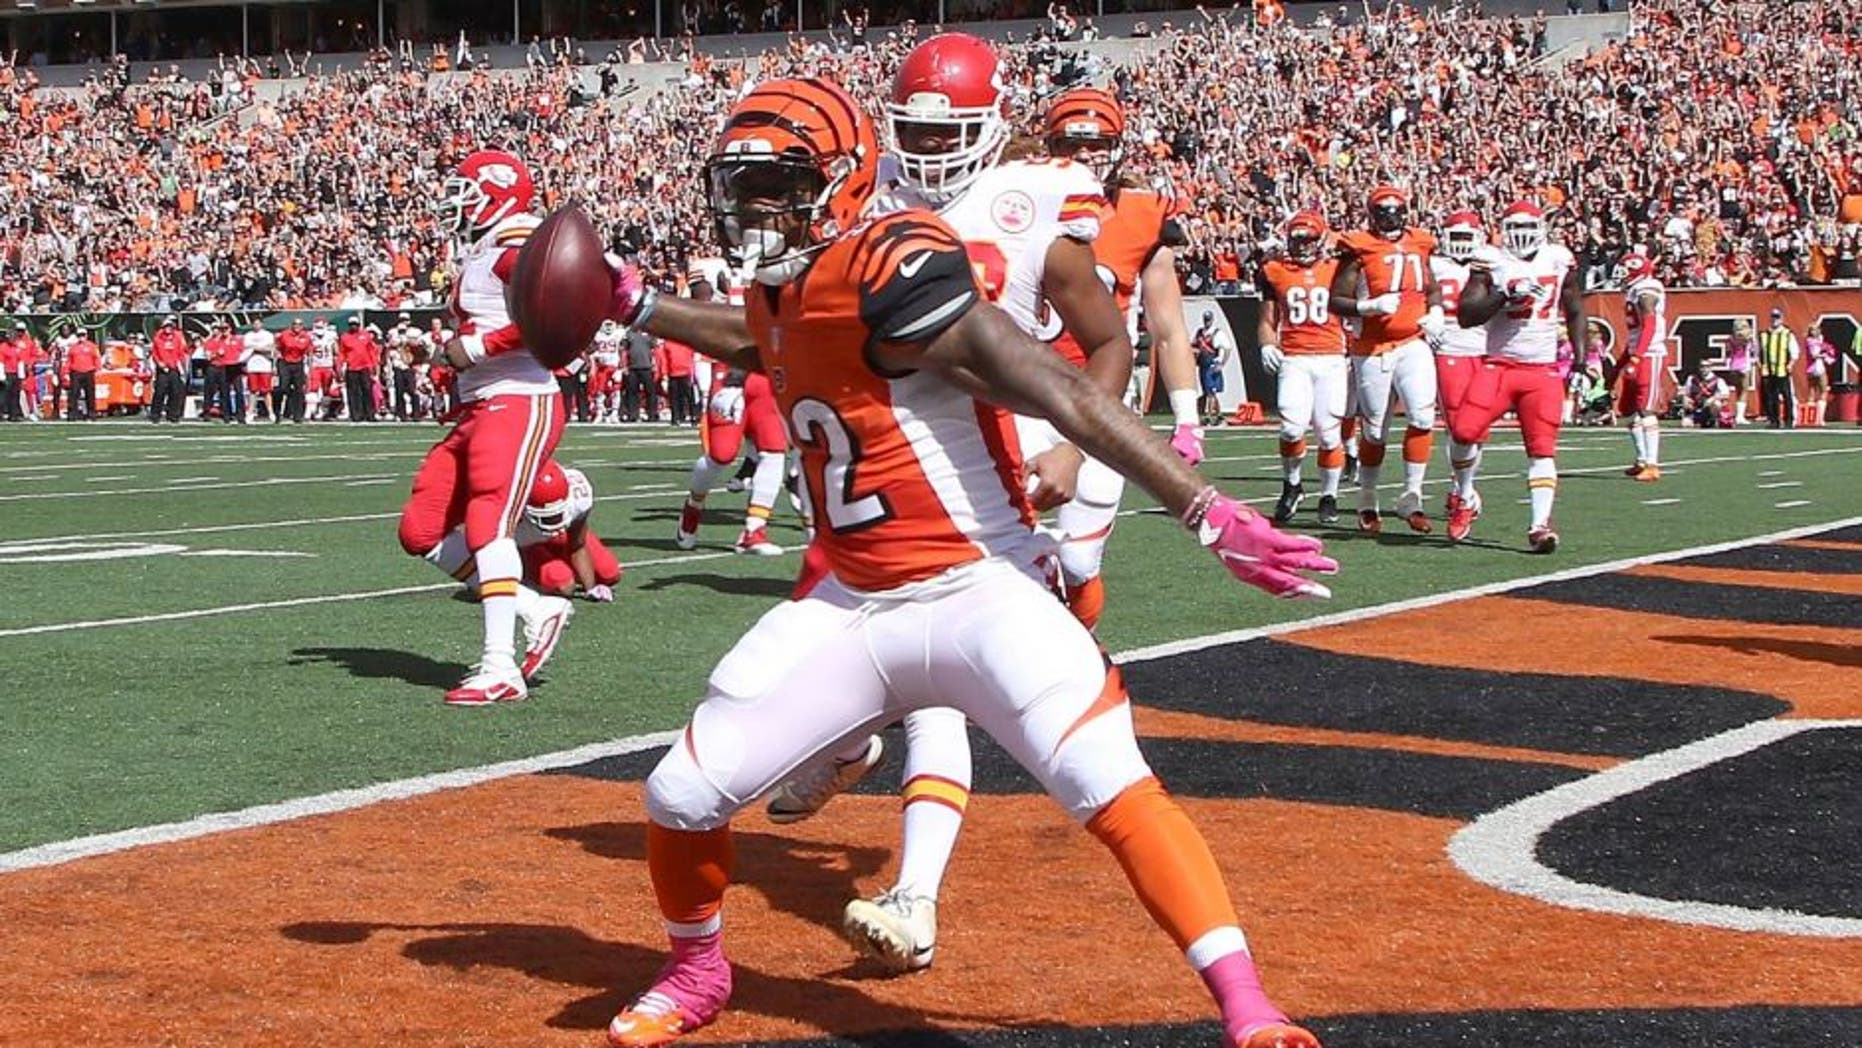 CINCINNATI, OH - OCTOBER 4: Jeremy Hill #32 of the Cincinnati Bengals celebrates after scoring a touchdown during the first quarter of the game against the Kansas City Chiefs at Paul Brown Stadium on October 4, 2015 in Cincinnati, Ohio. (Photo by John Grieshop/Getty Images)